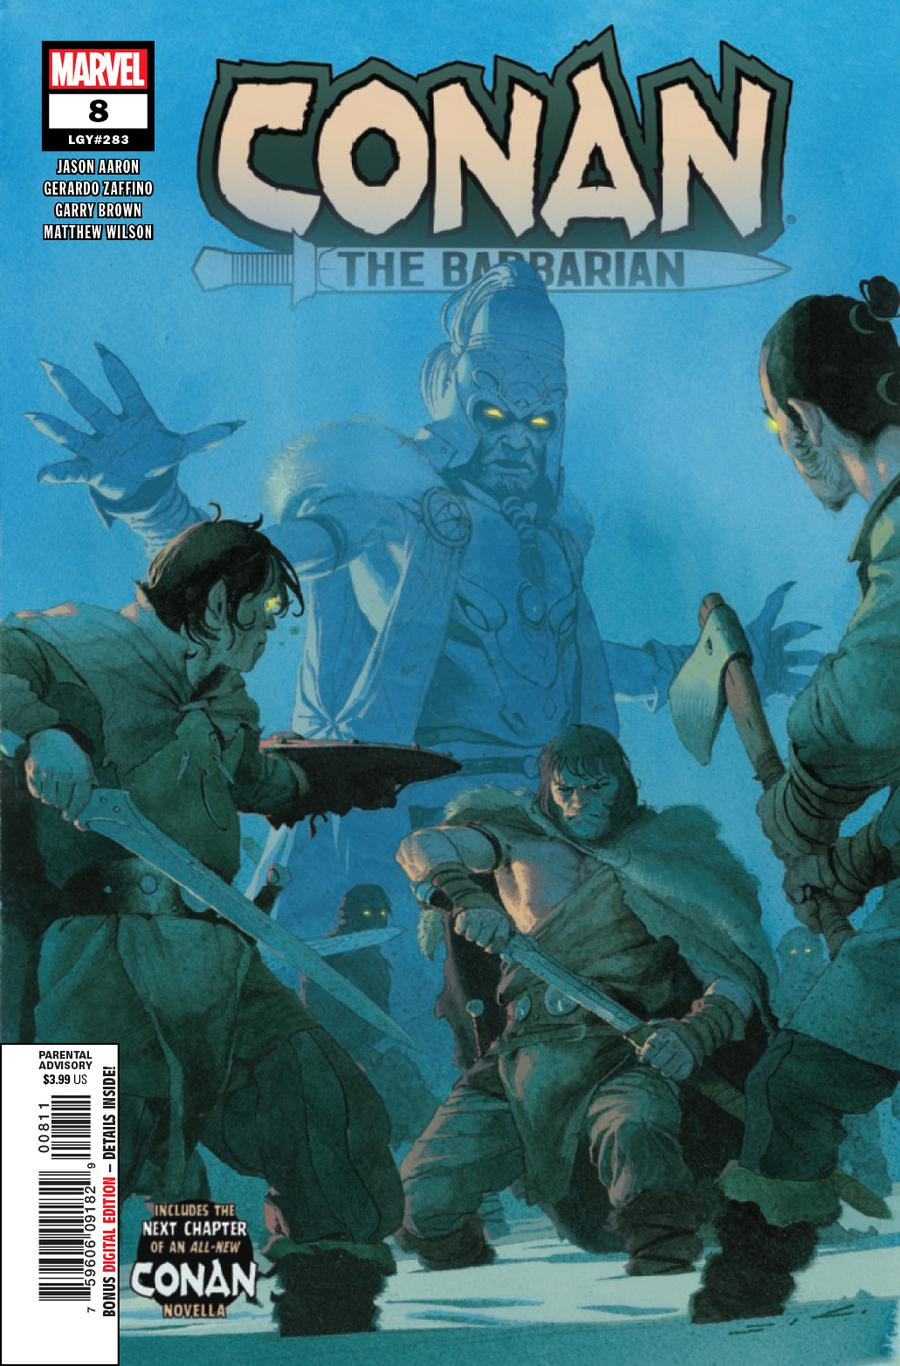 Conan The Barbarian Vol 4 #8 Cover A Regular Esad Ribic Cover